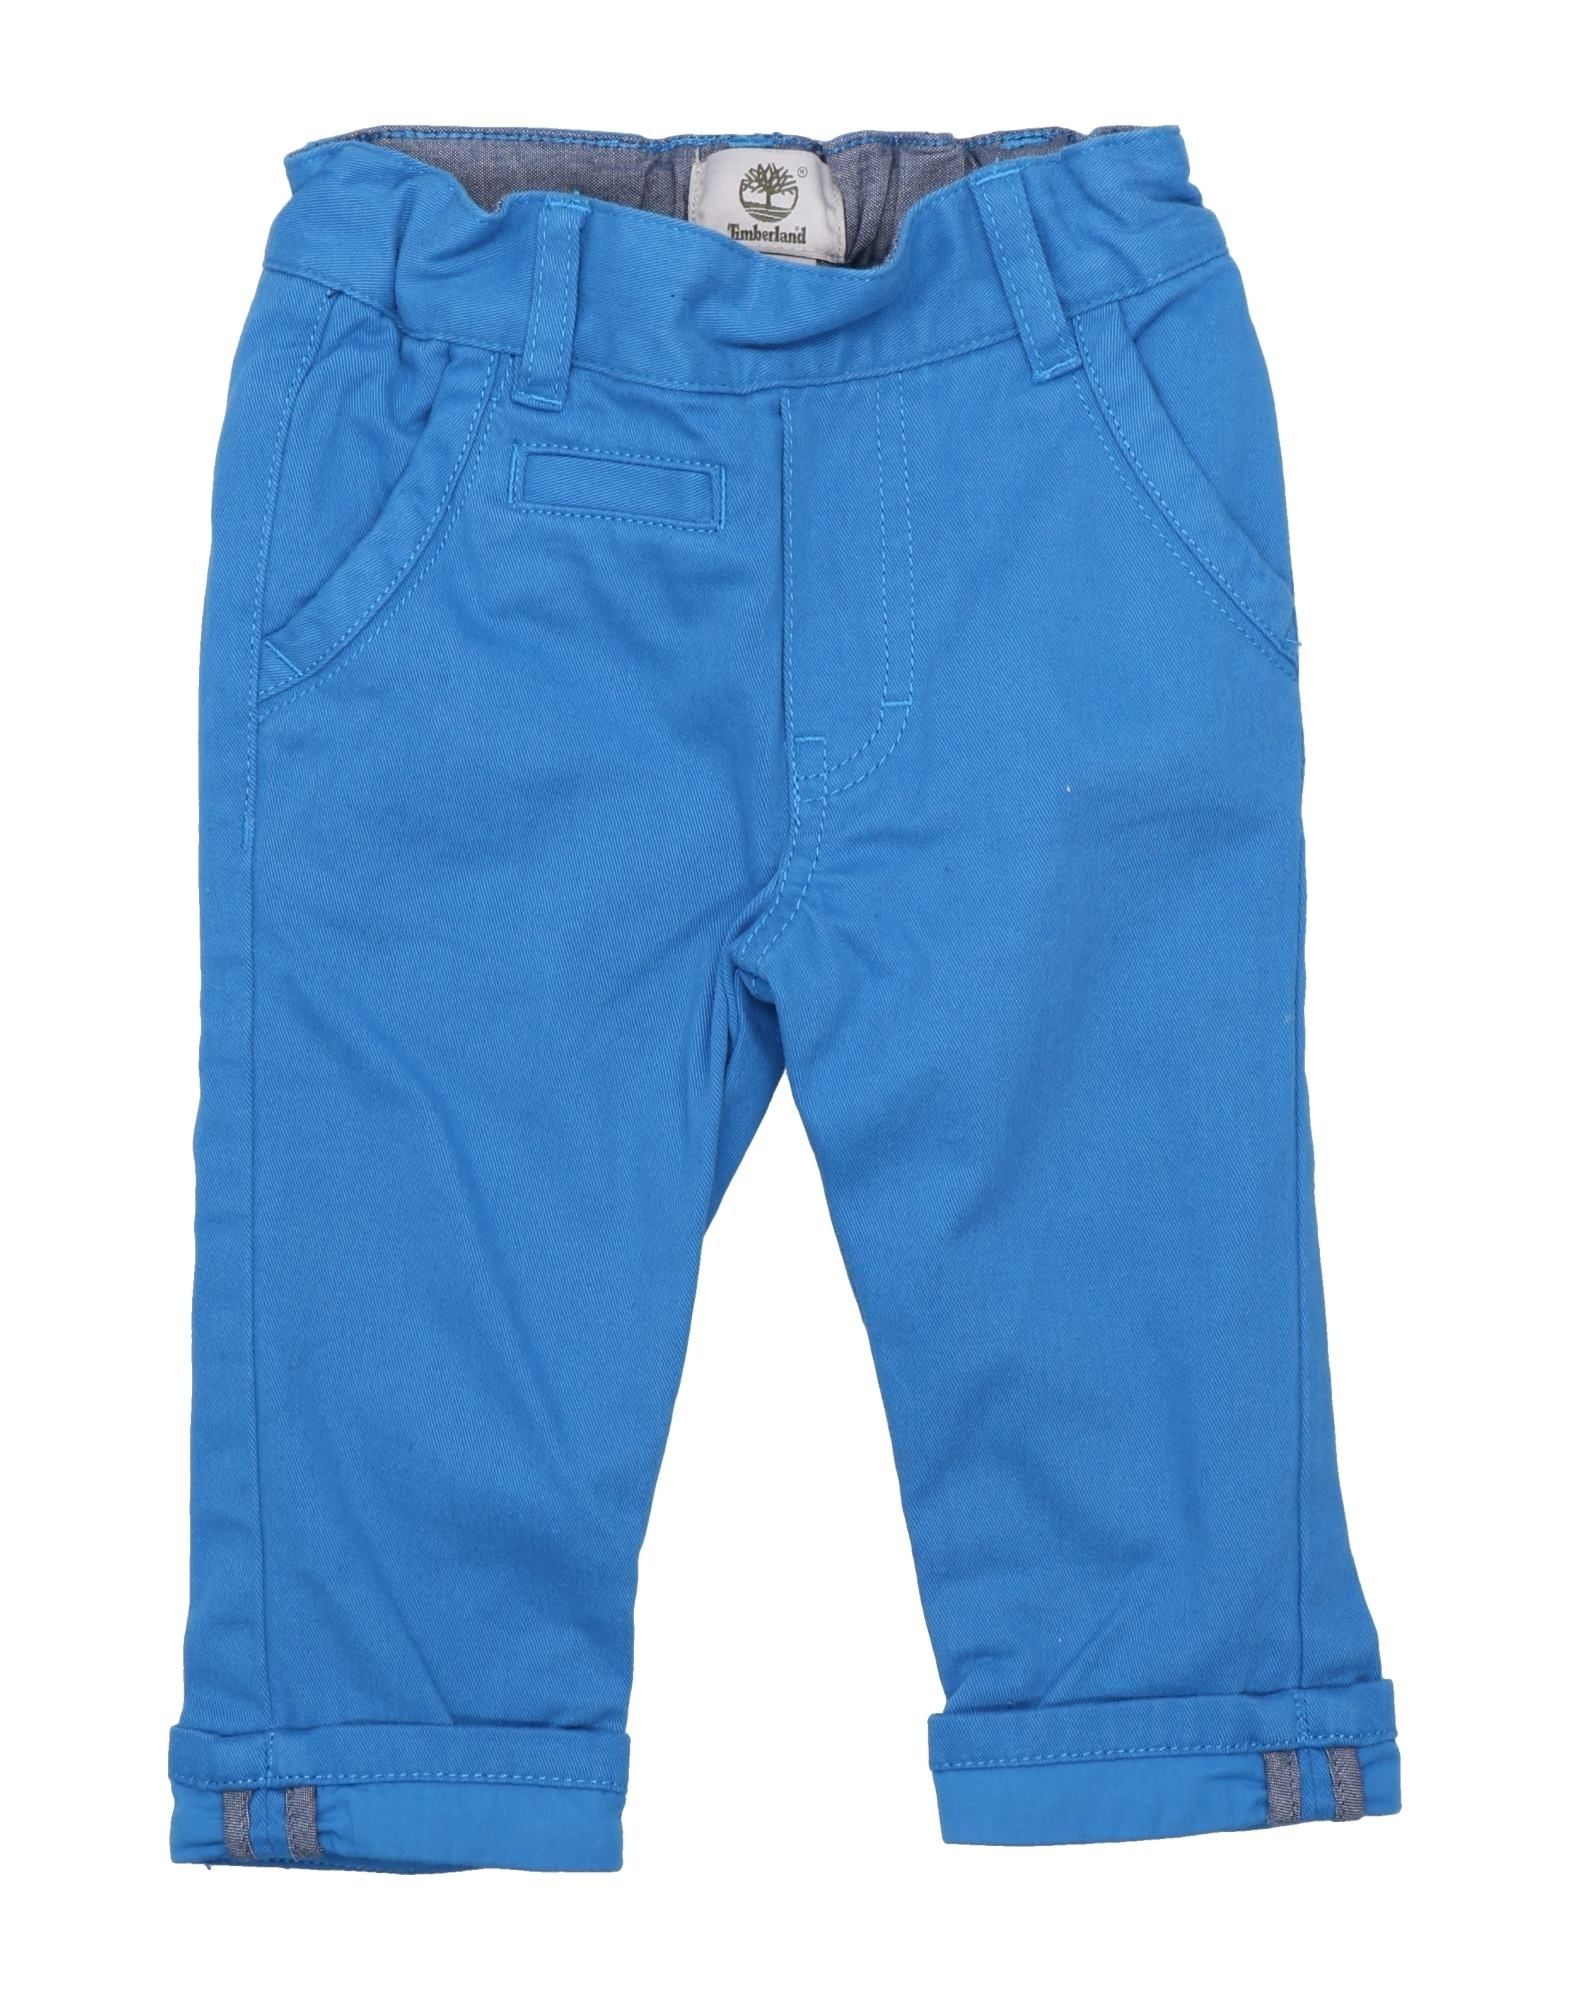 Timberland - Trousers - Casual Trousers - On Yoox.com